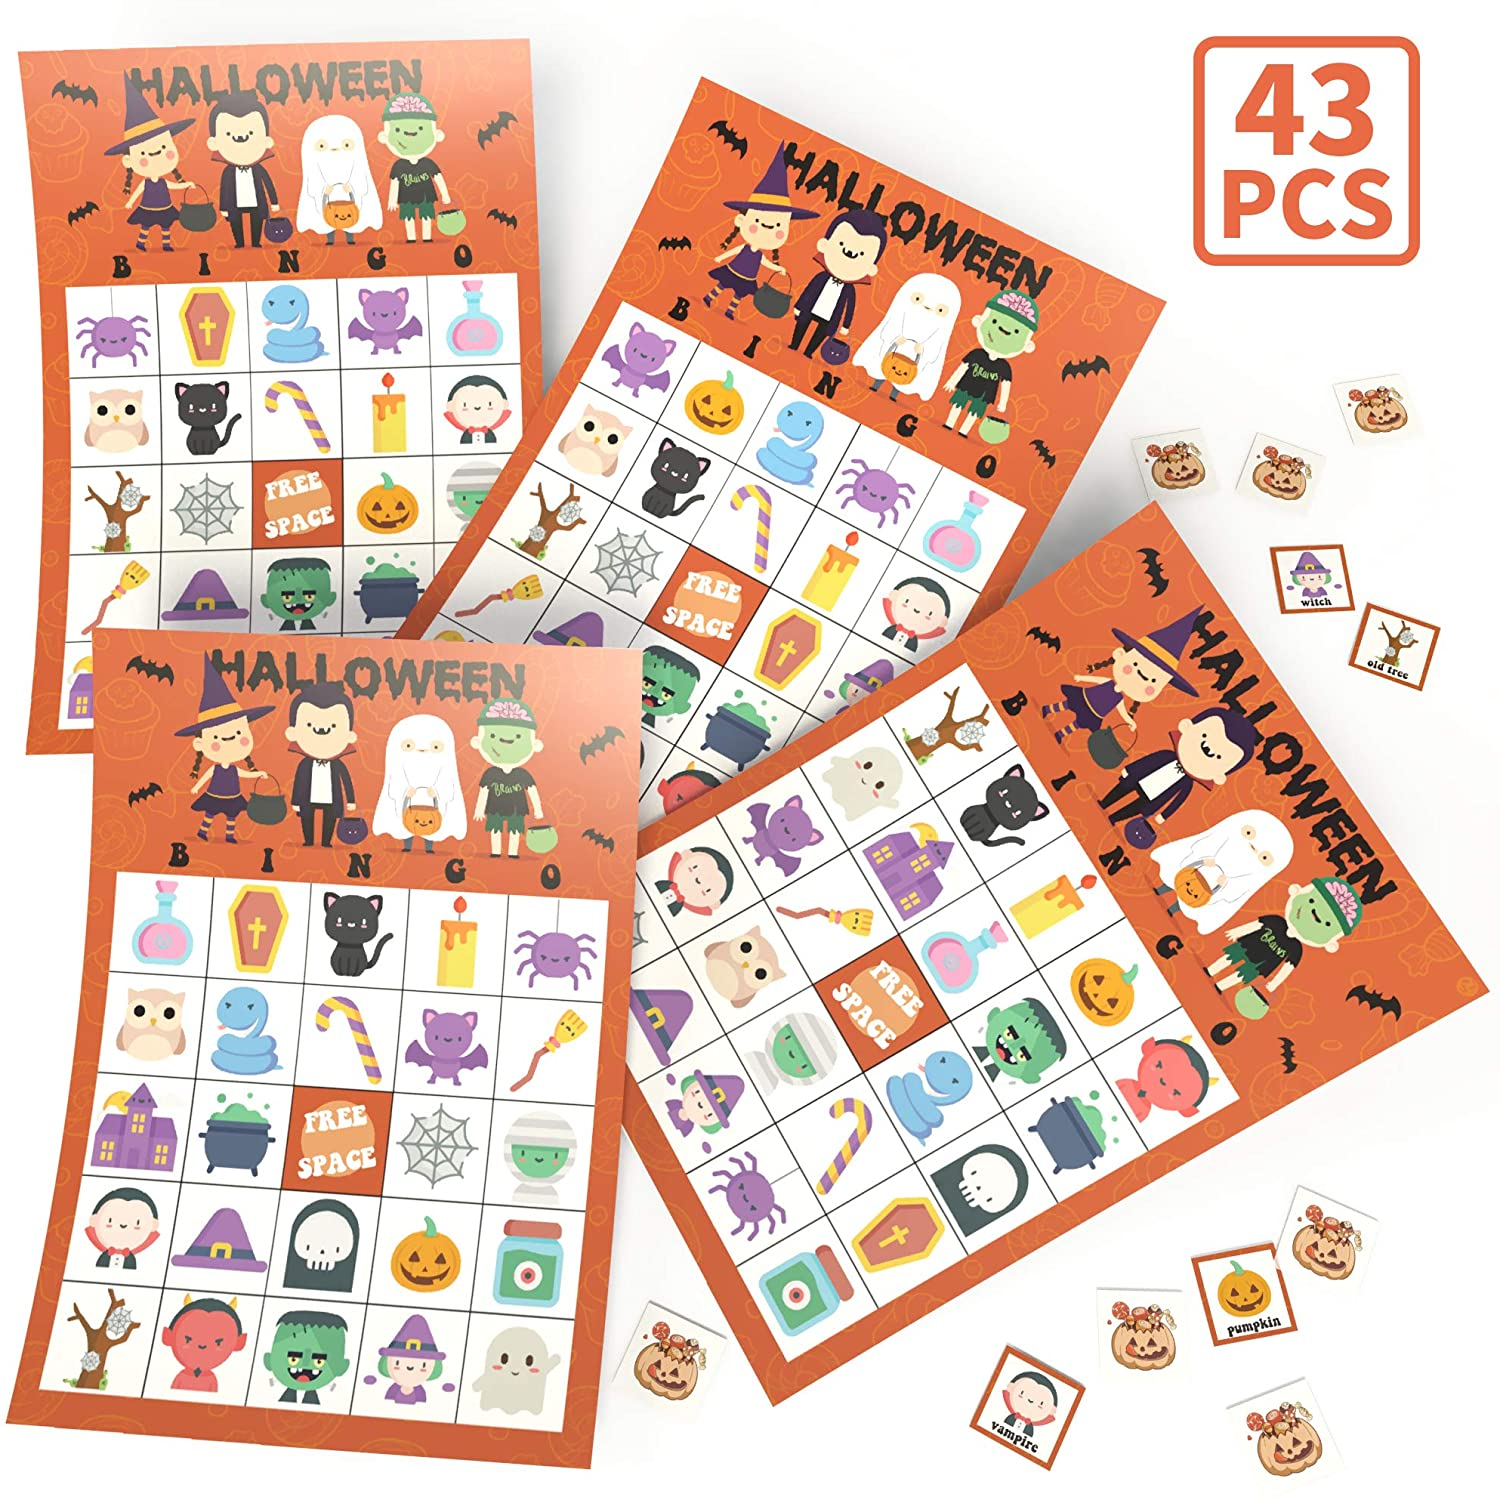 KD KIDPAR Halloween Bingo Cards Game Set for Kids and Whole Family - 32 Players, Reusable and Easy Read